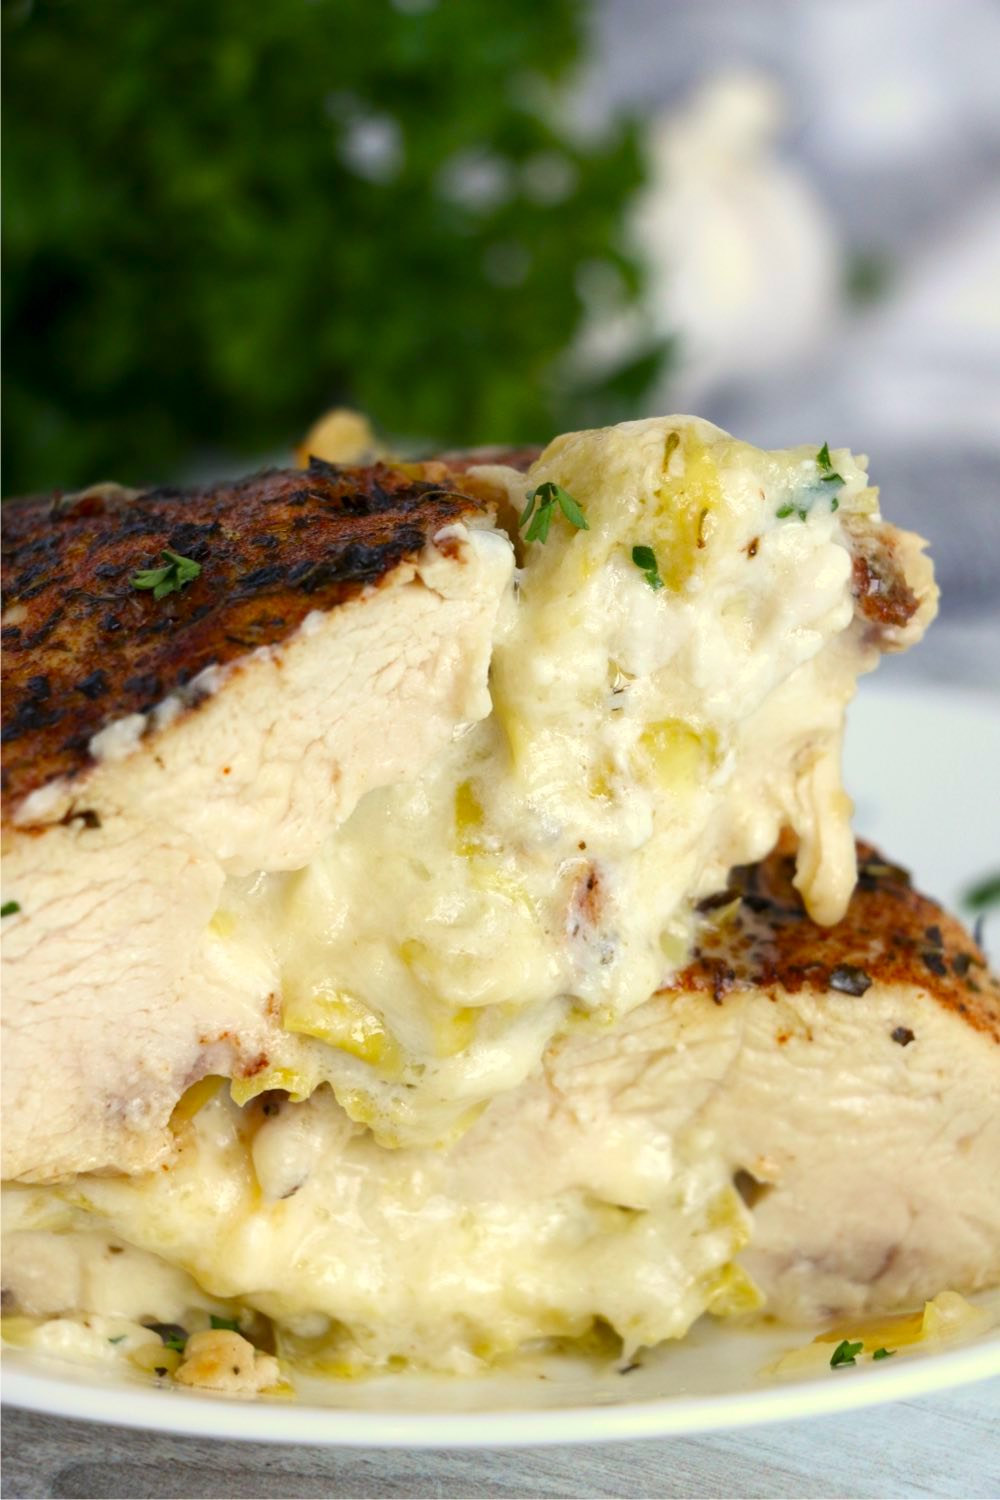 stacked chicken breast halves with artichoke filling